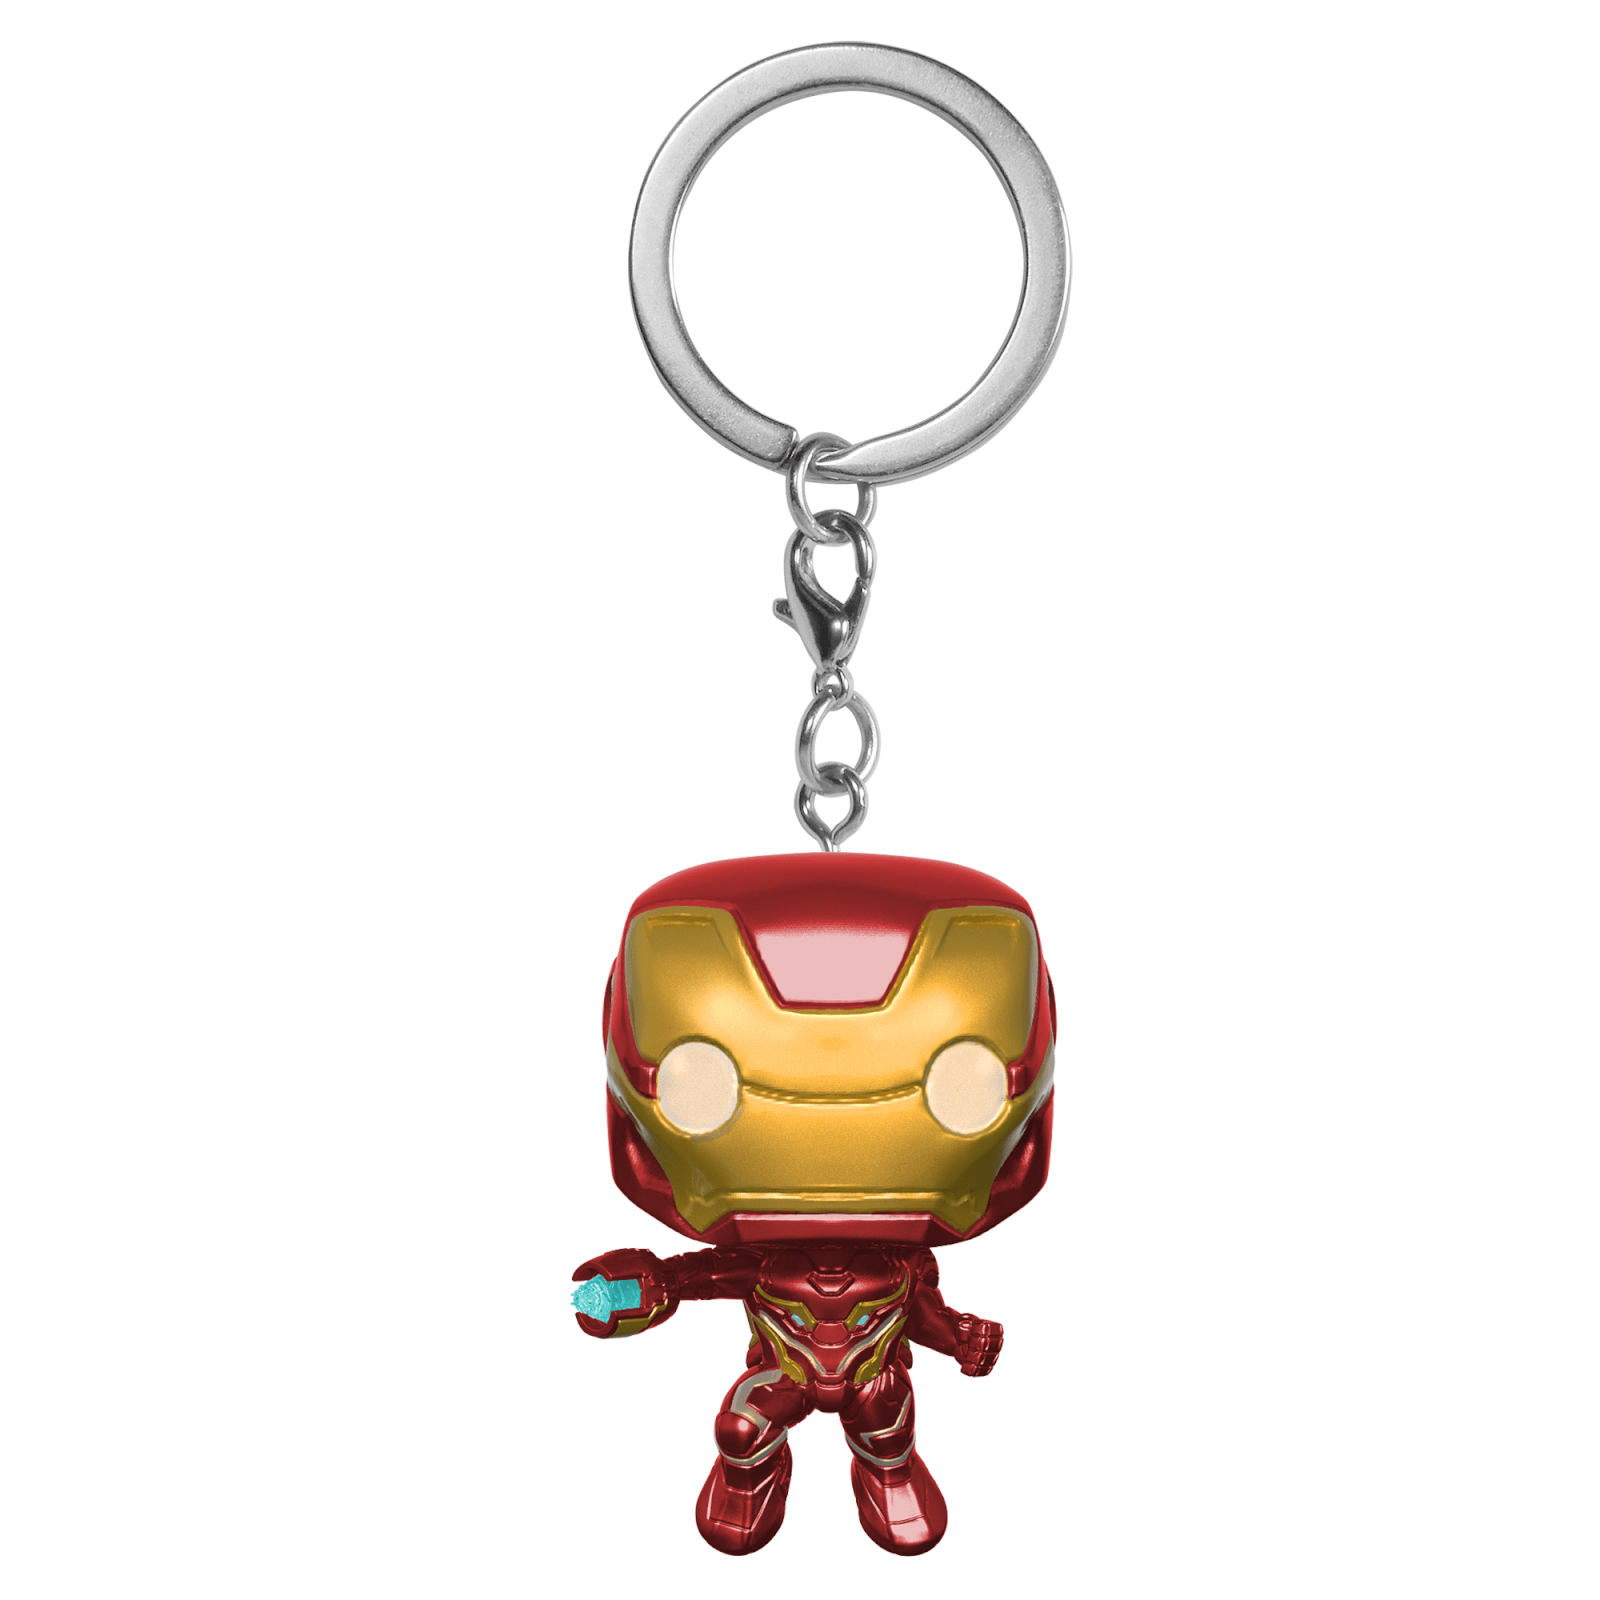 Marvel Avengers Infinity War Iron Man Pop! Vinyl Keychain